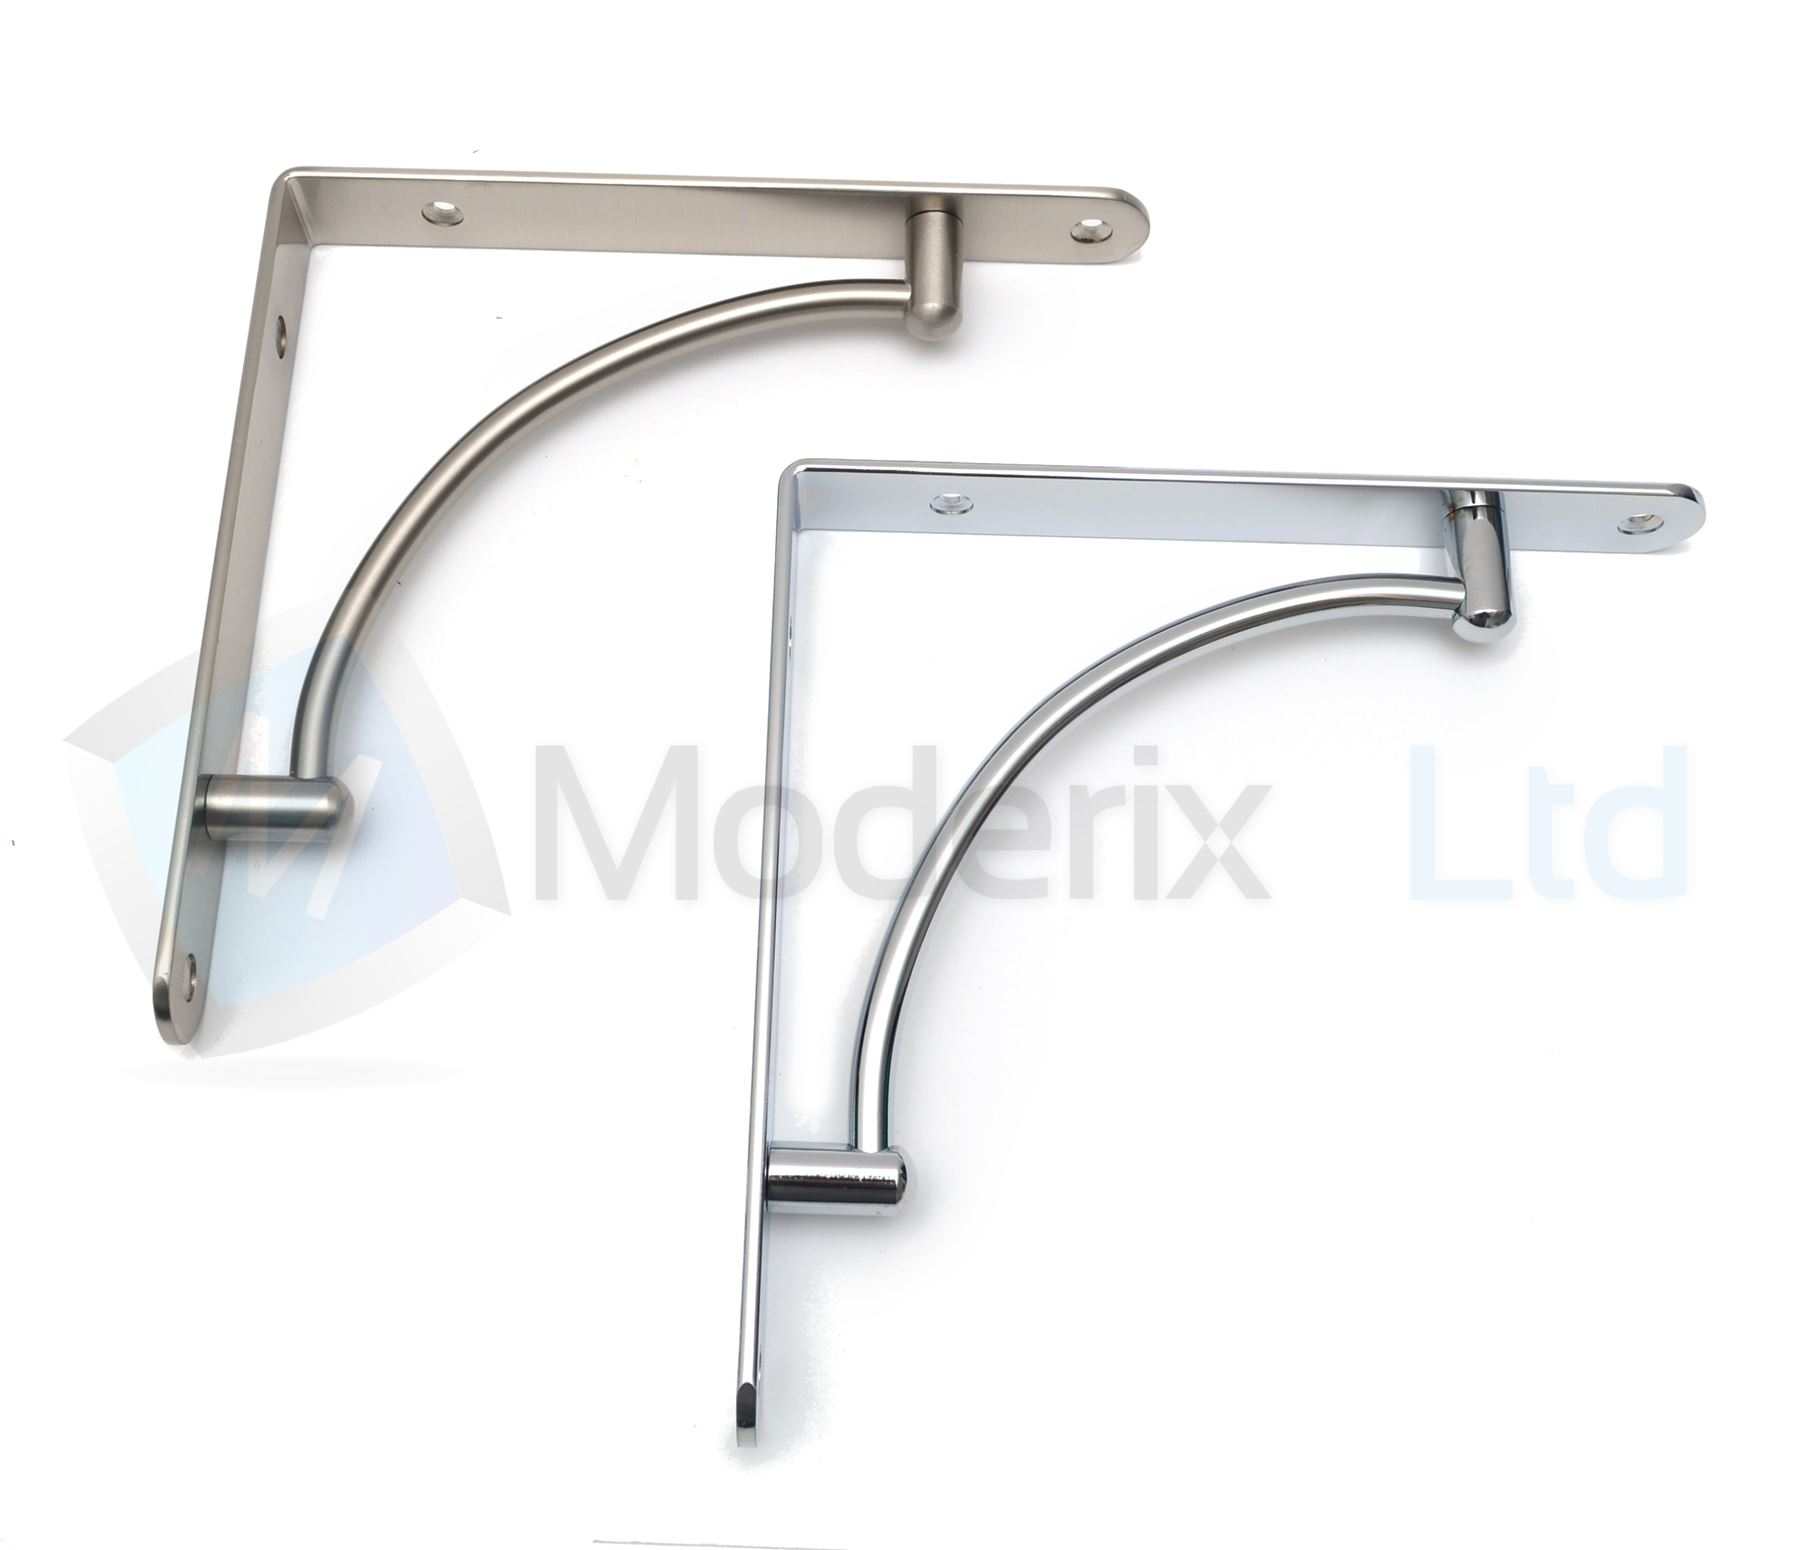 High Quality Fixed Shelf Brackets Supports With Fixings